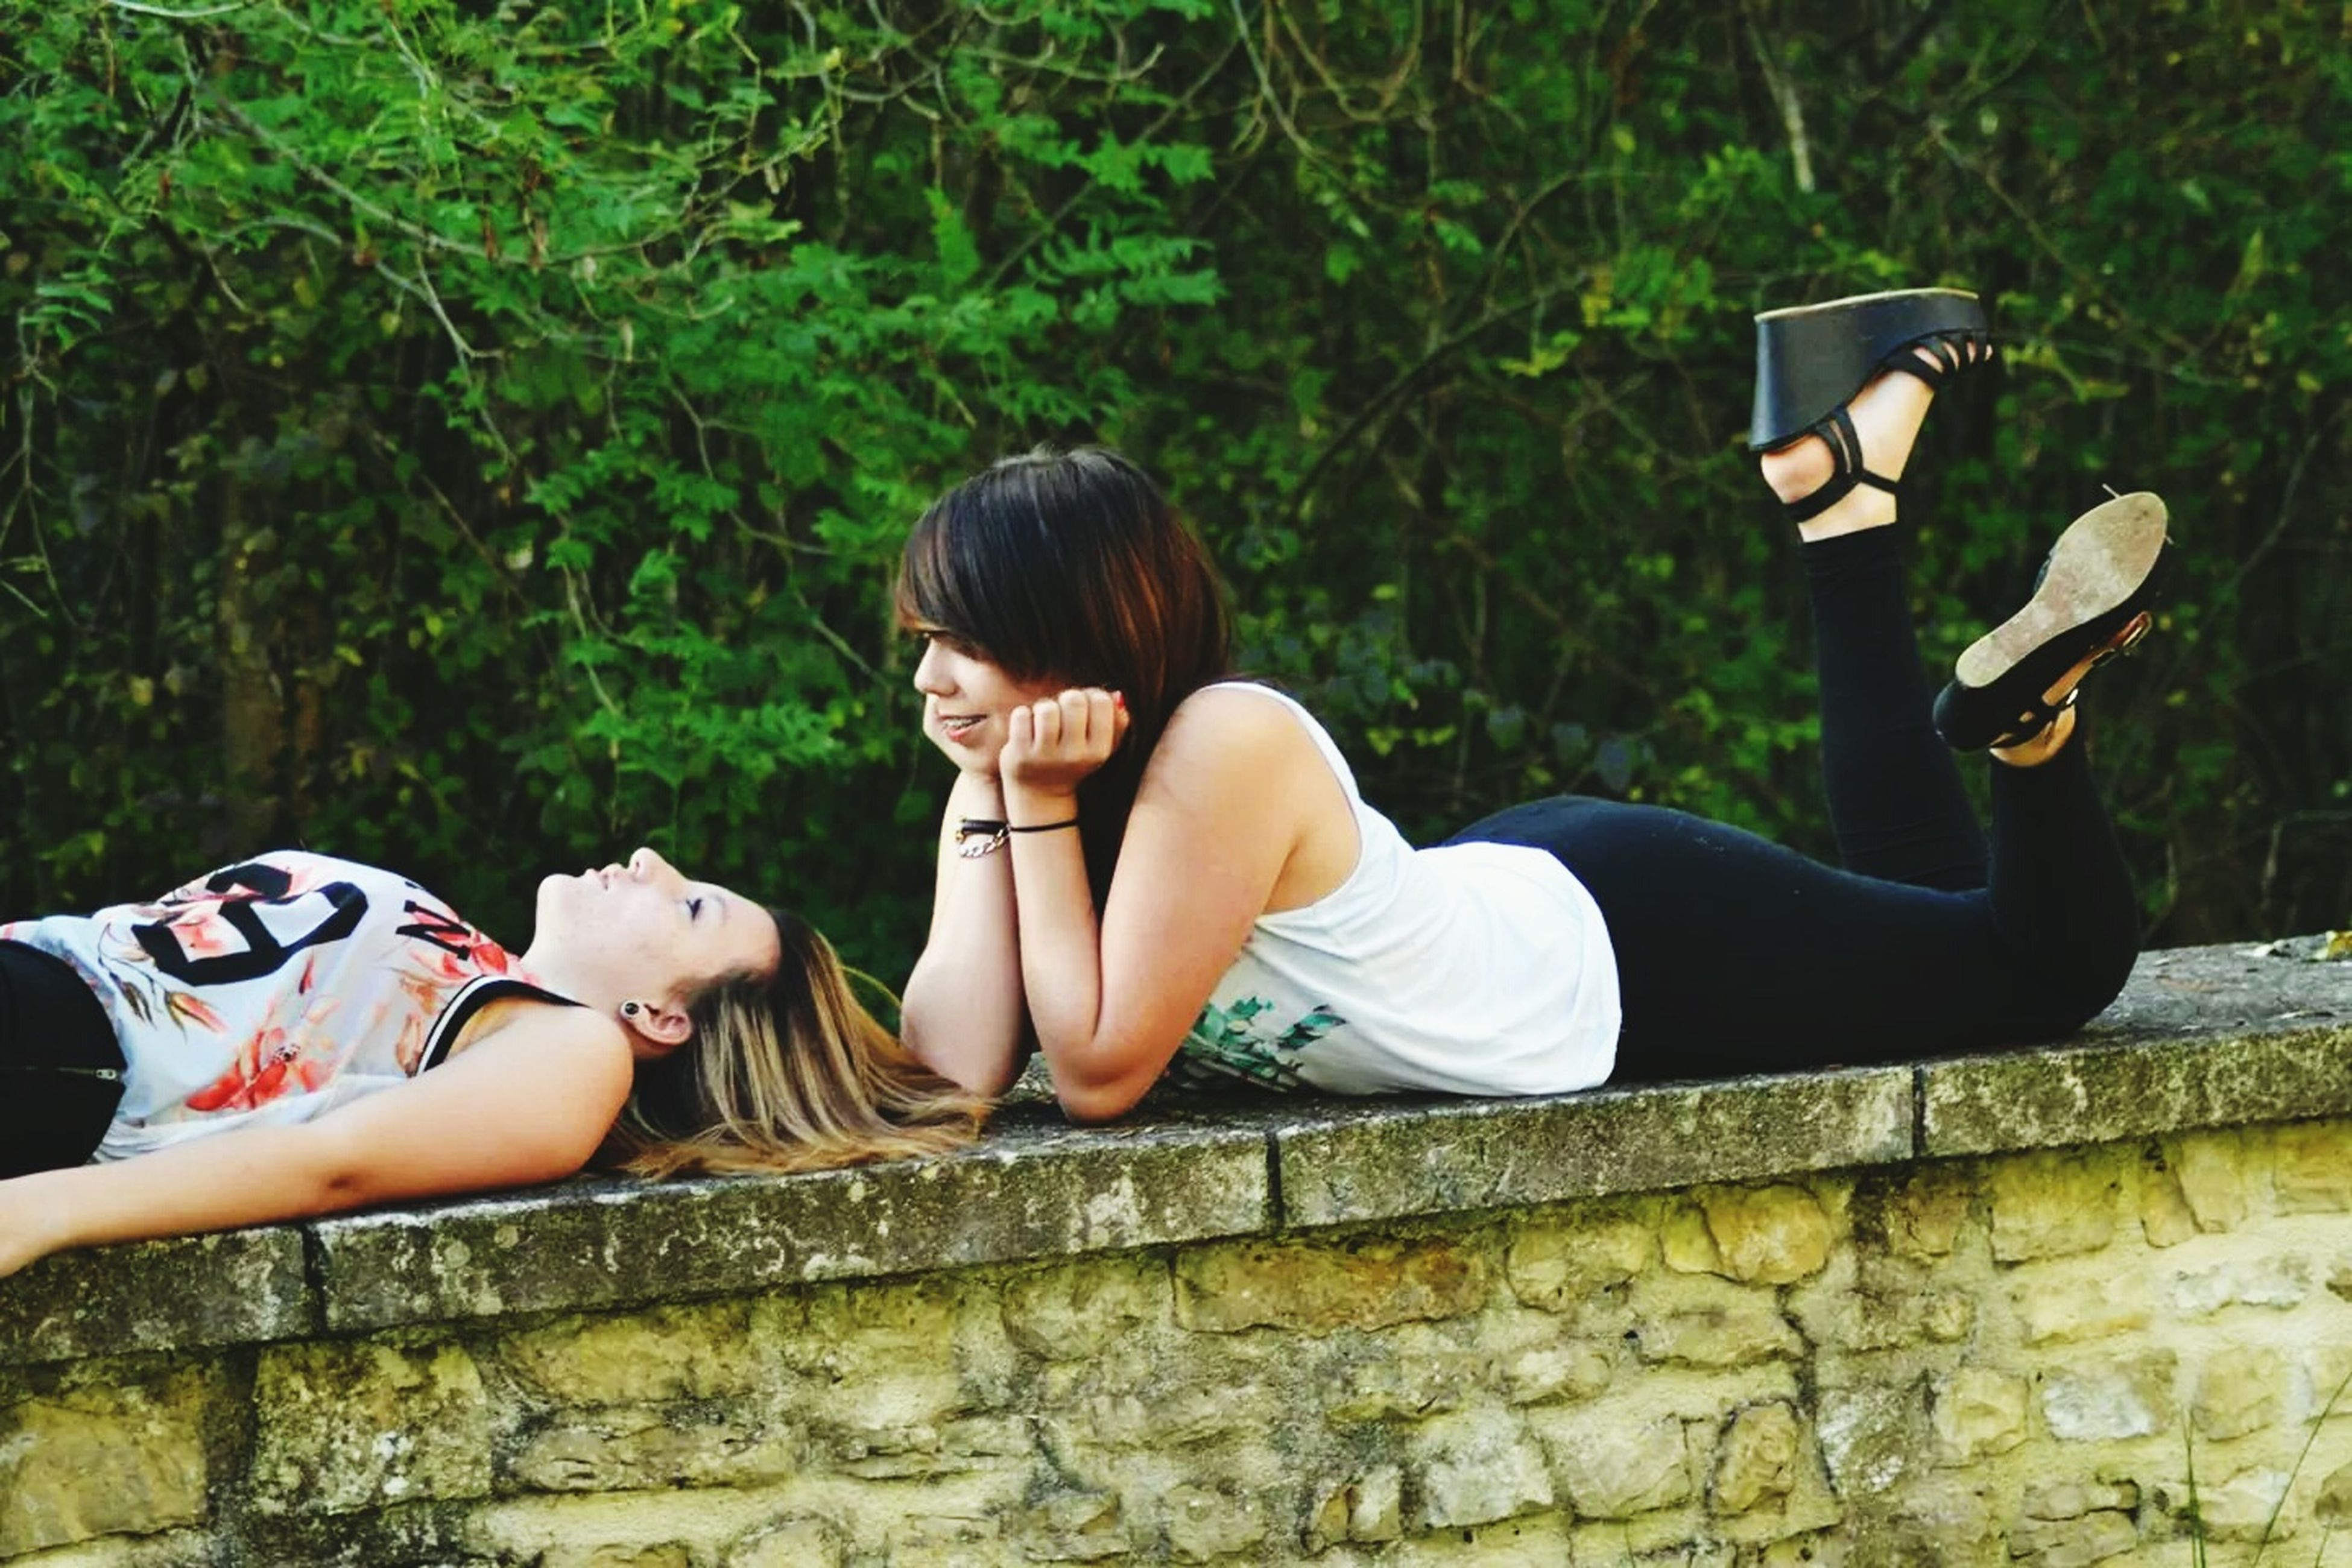 lifestyles, leisure activity, sitting, casual clothing, young adult, person, relaxation, young women, three quarter length, togetherness, waist up, bonding, lying down, full length, smiling, resting